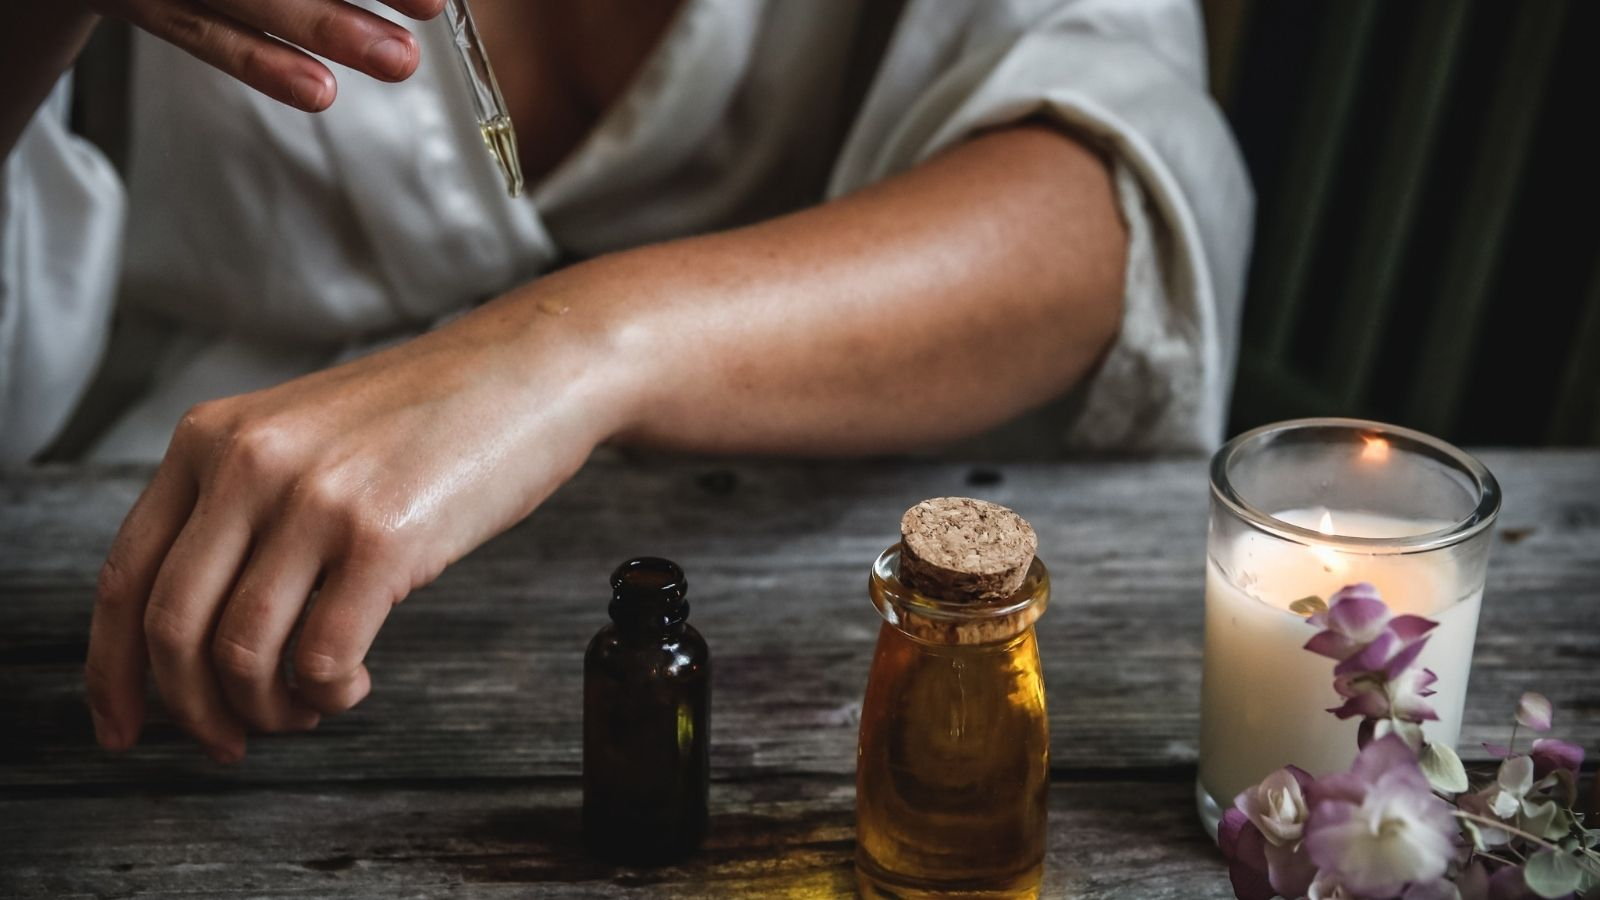 An aromatherapist drops essential oils onto her wrist.